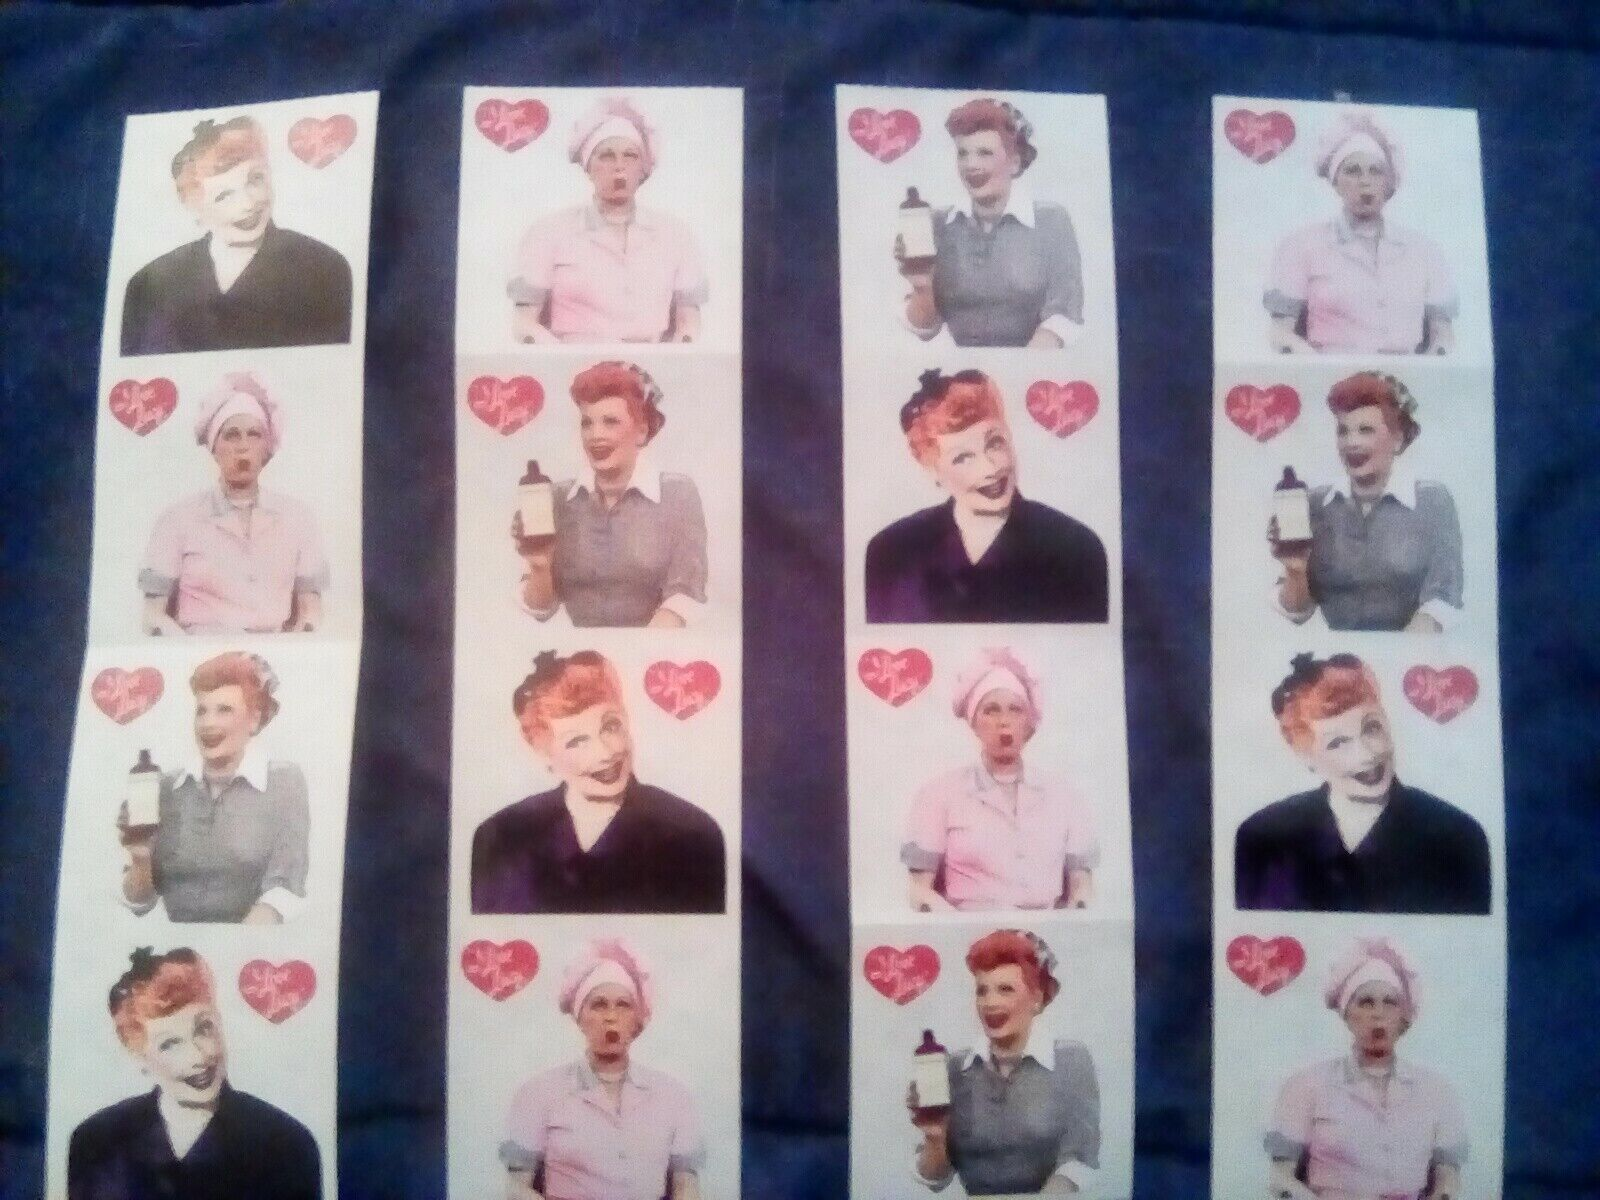 I Love Lucy Stickers - $2.99